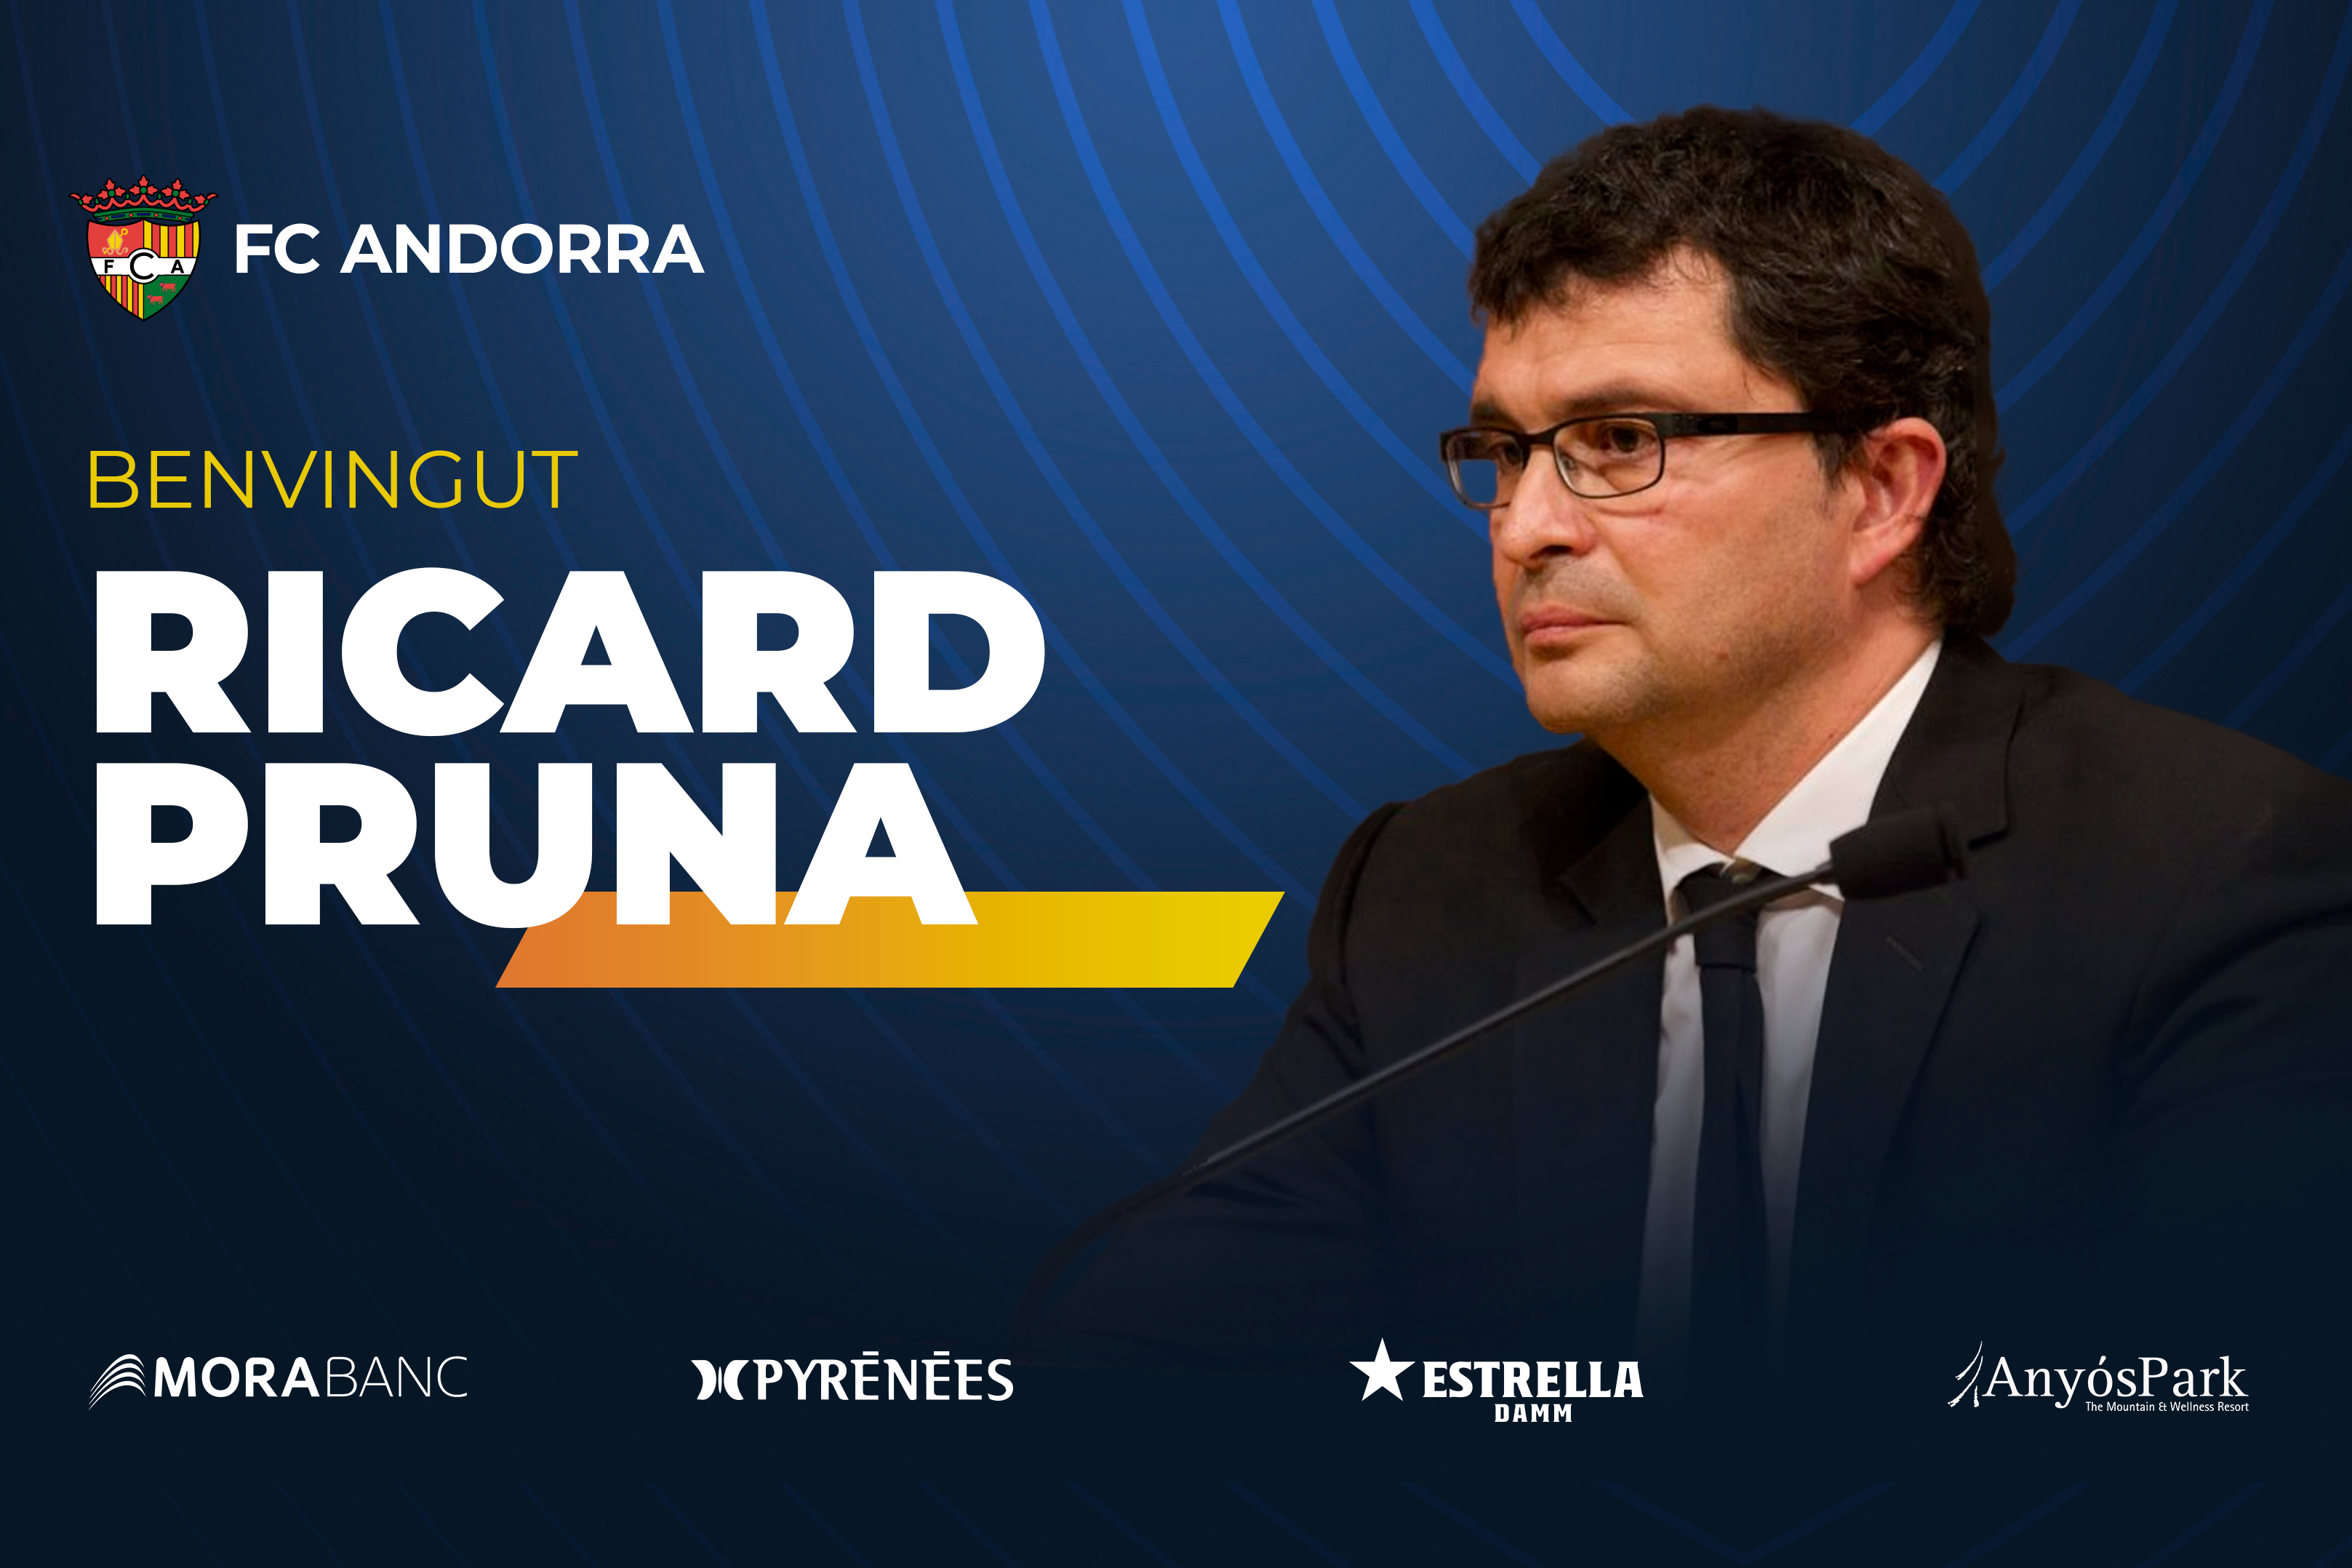 Ricard Pruna appointed medical advisor at FC Andorra